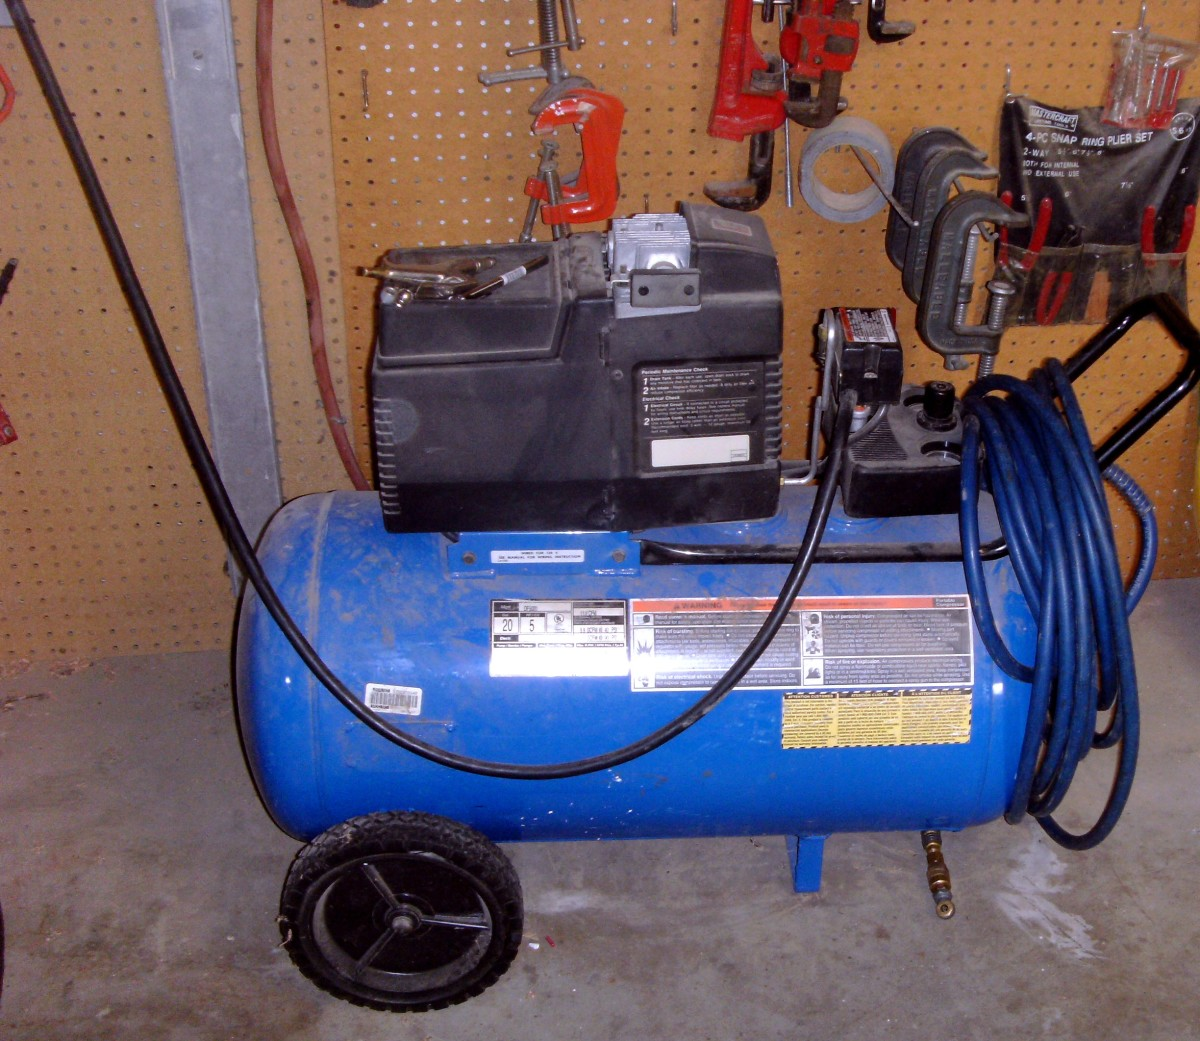 An Air Compressor Buying Guide For Home Use Air Compressors